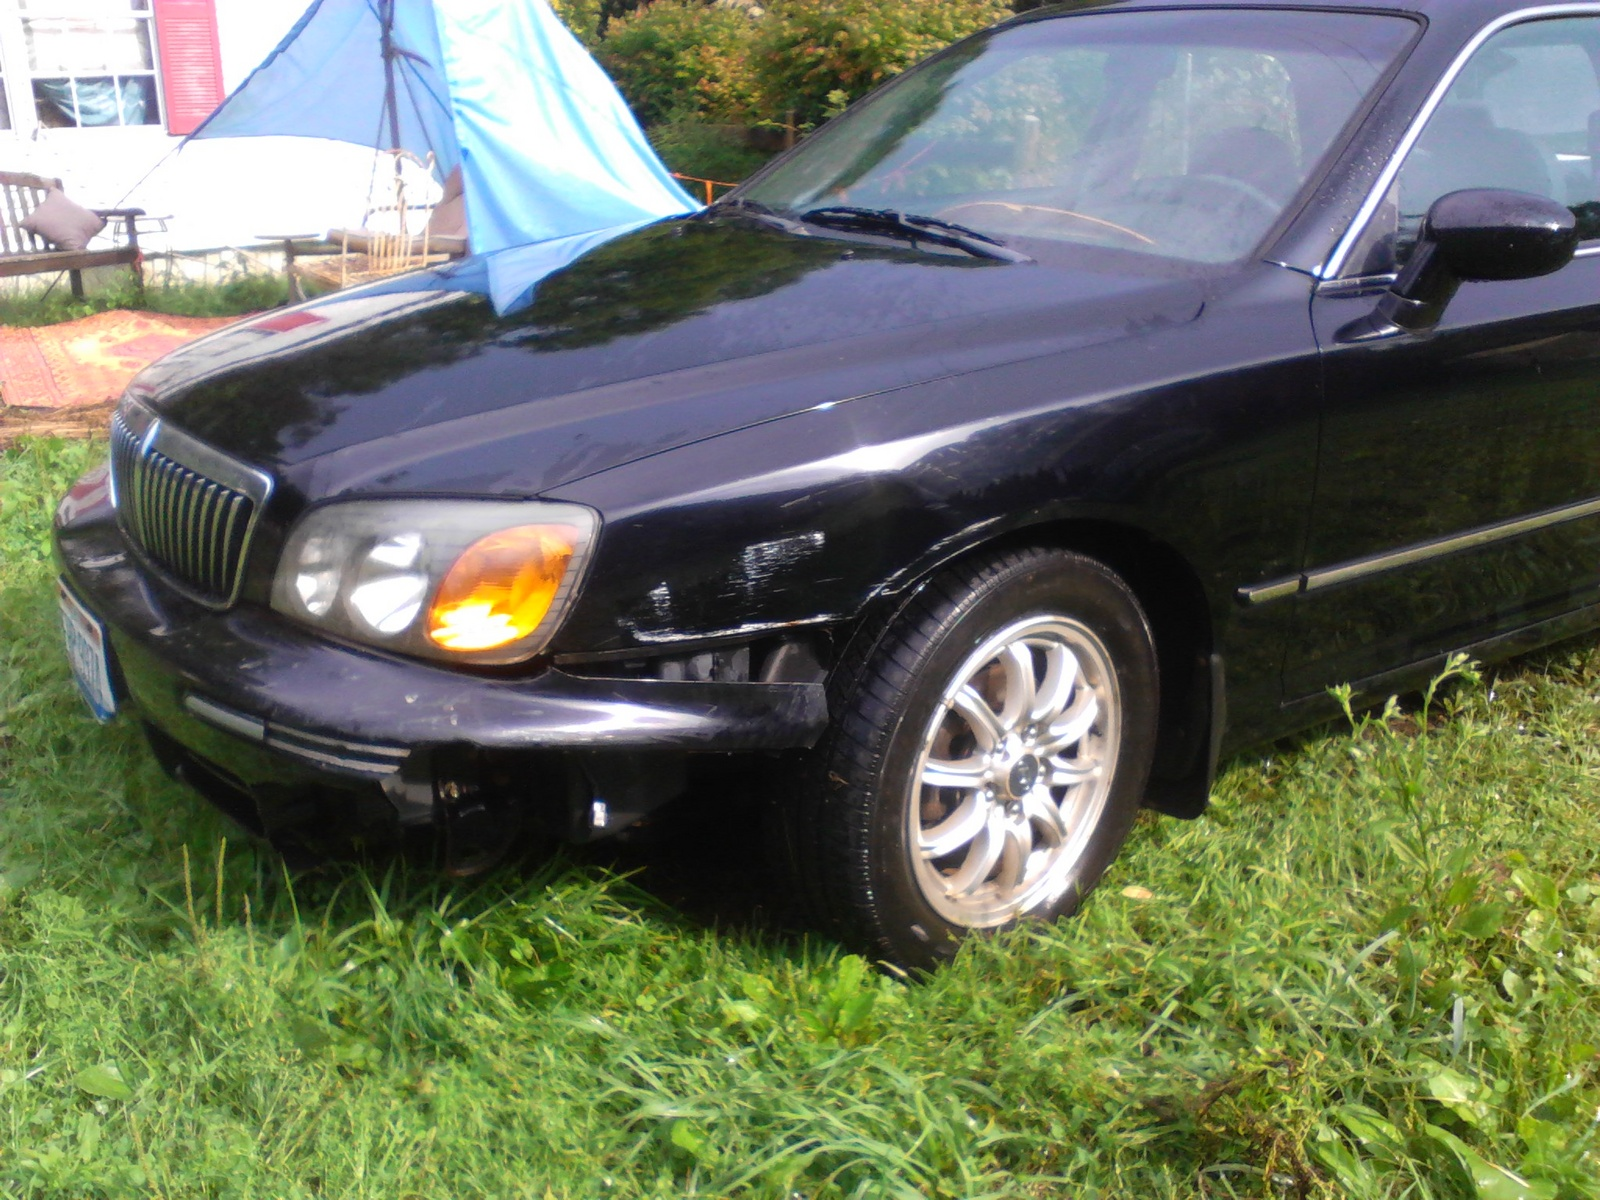 2003 Hyundai XG350 4 Dr L Sedan picture